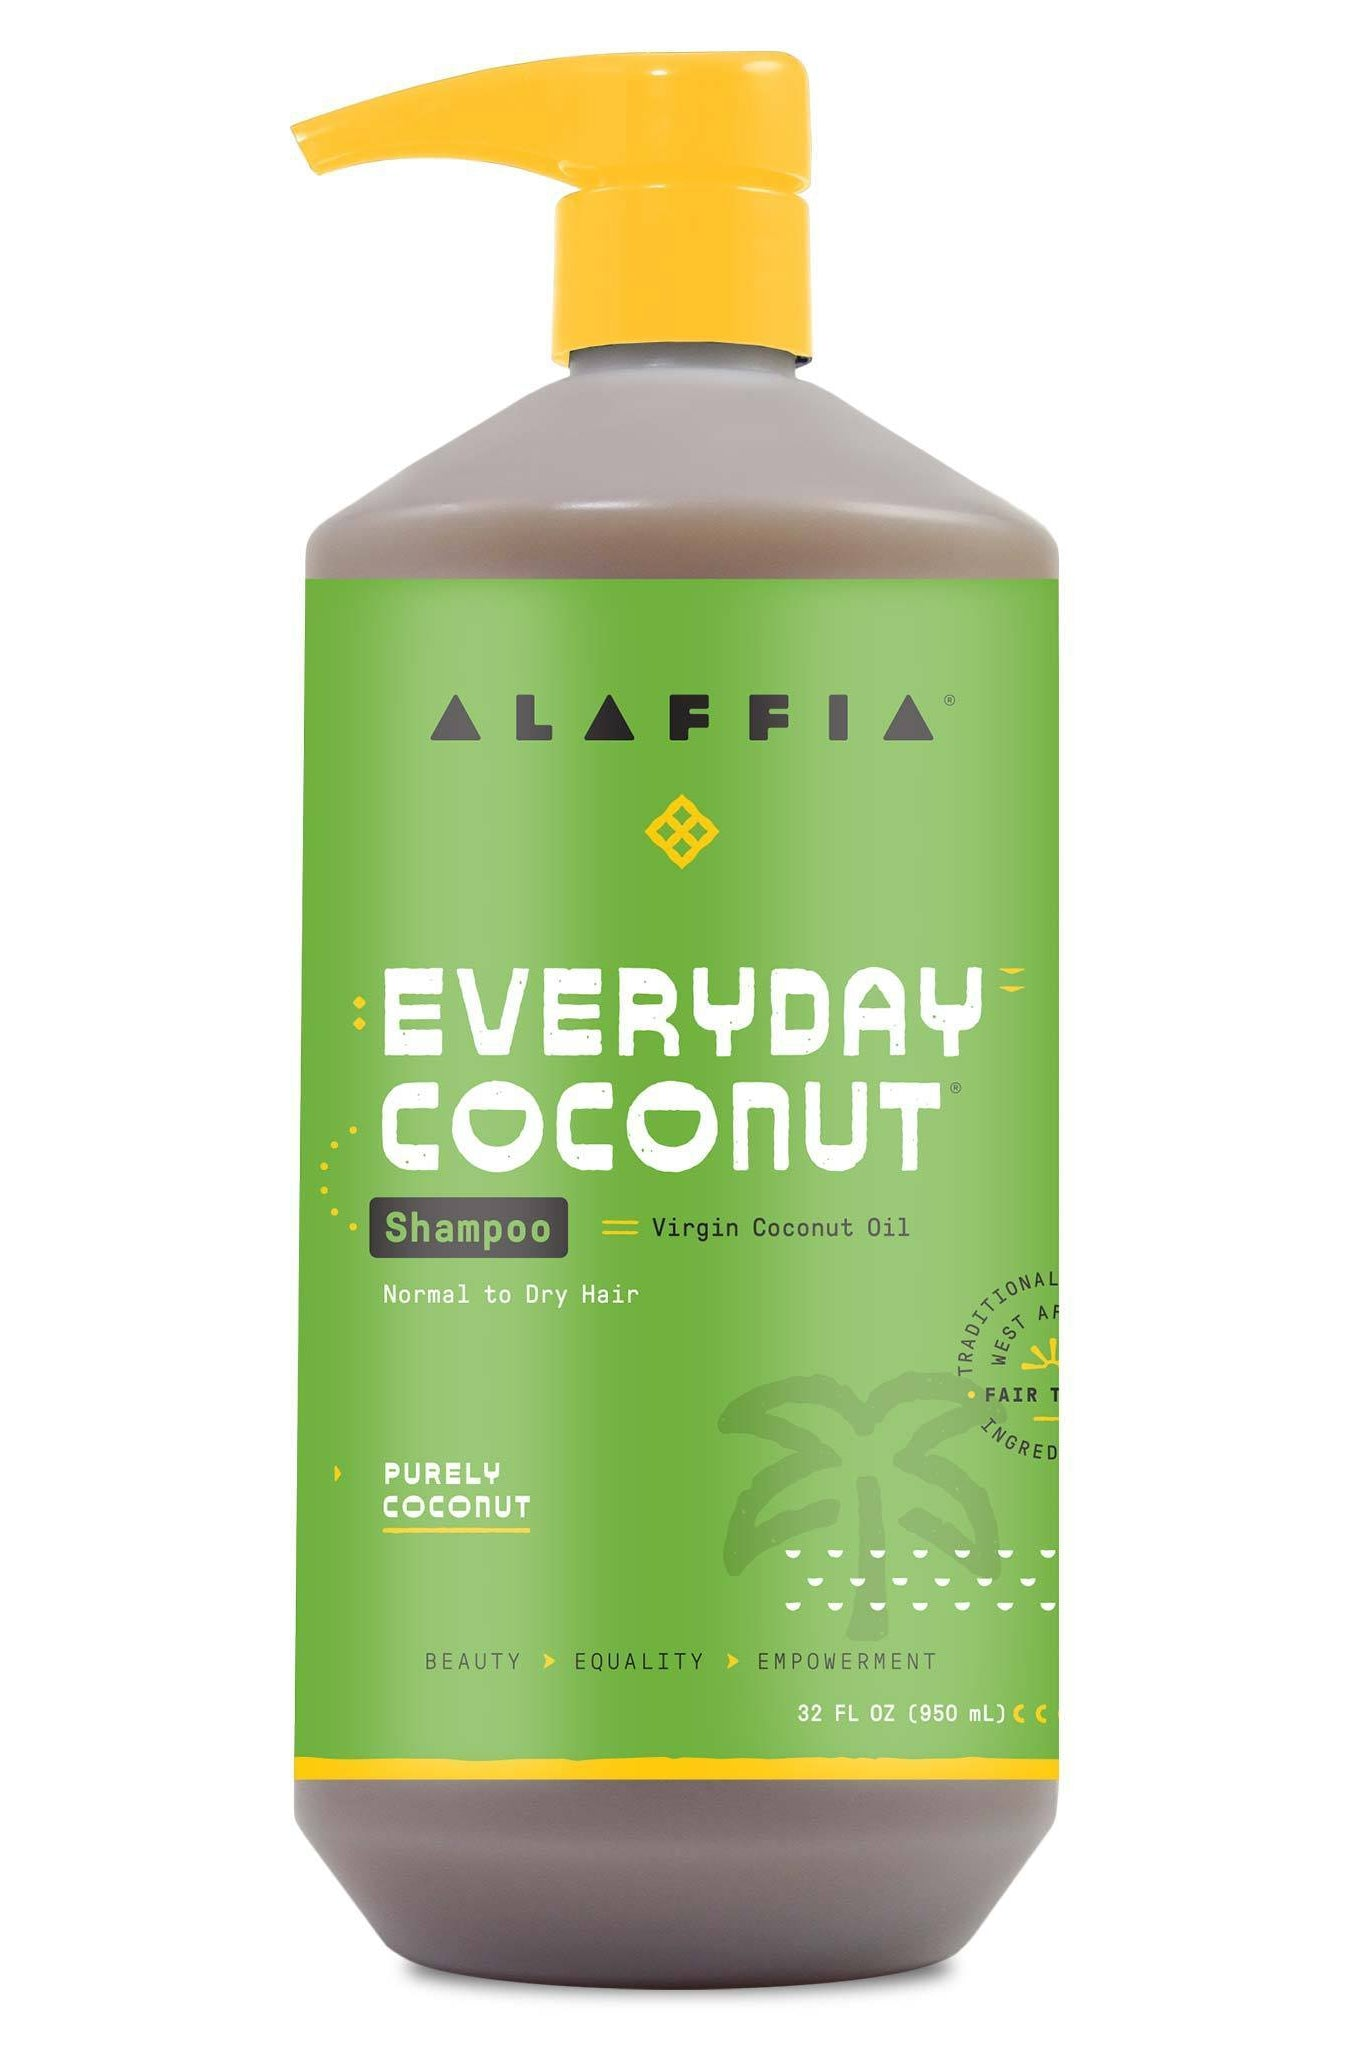 Alaffia Everyday Coconut Shampoo - Purely Coconut 950ml